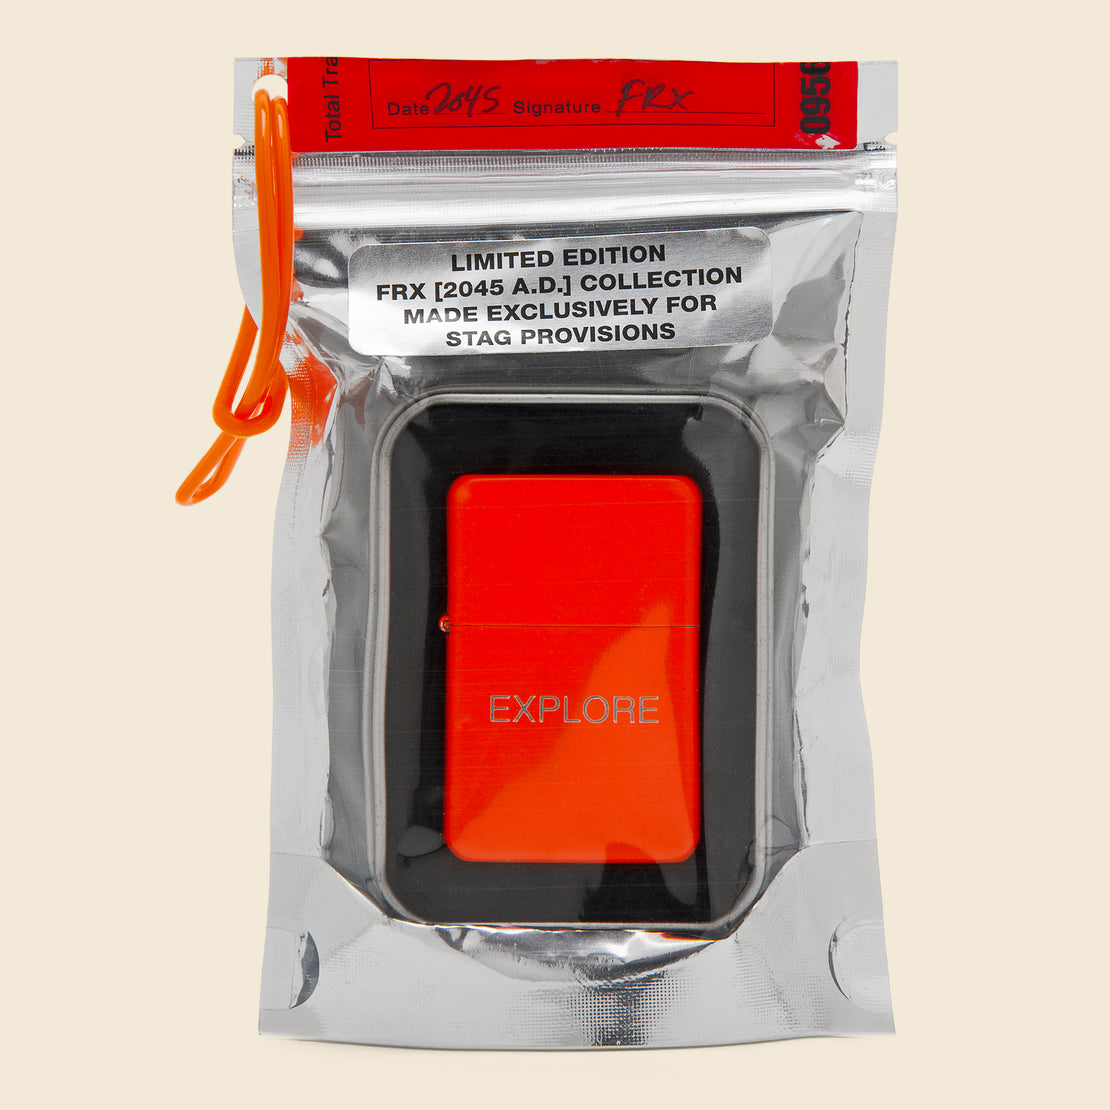 Field Rations Zippo Lighter - EXPLORE